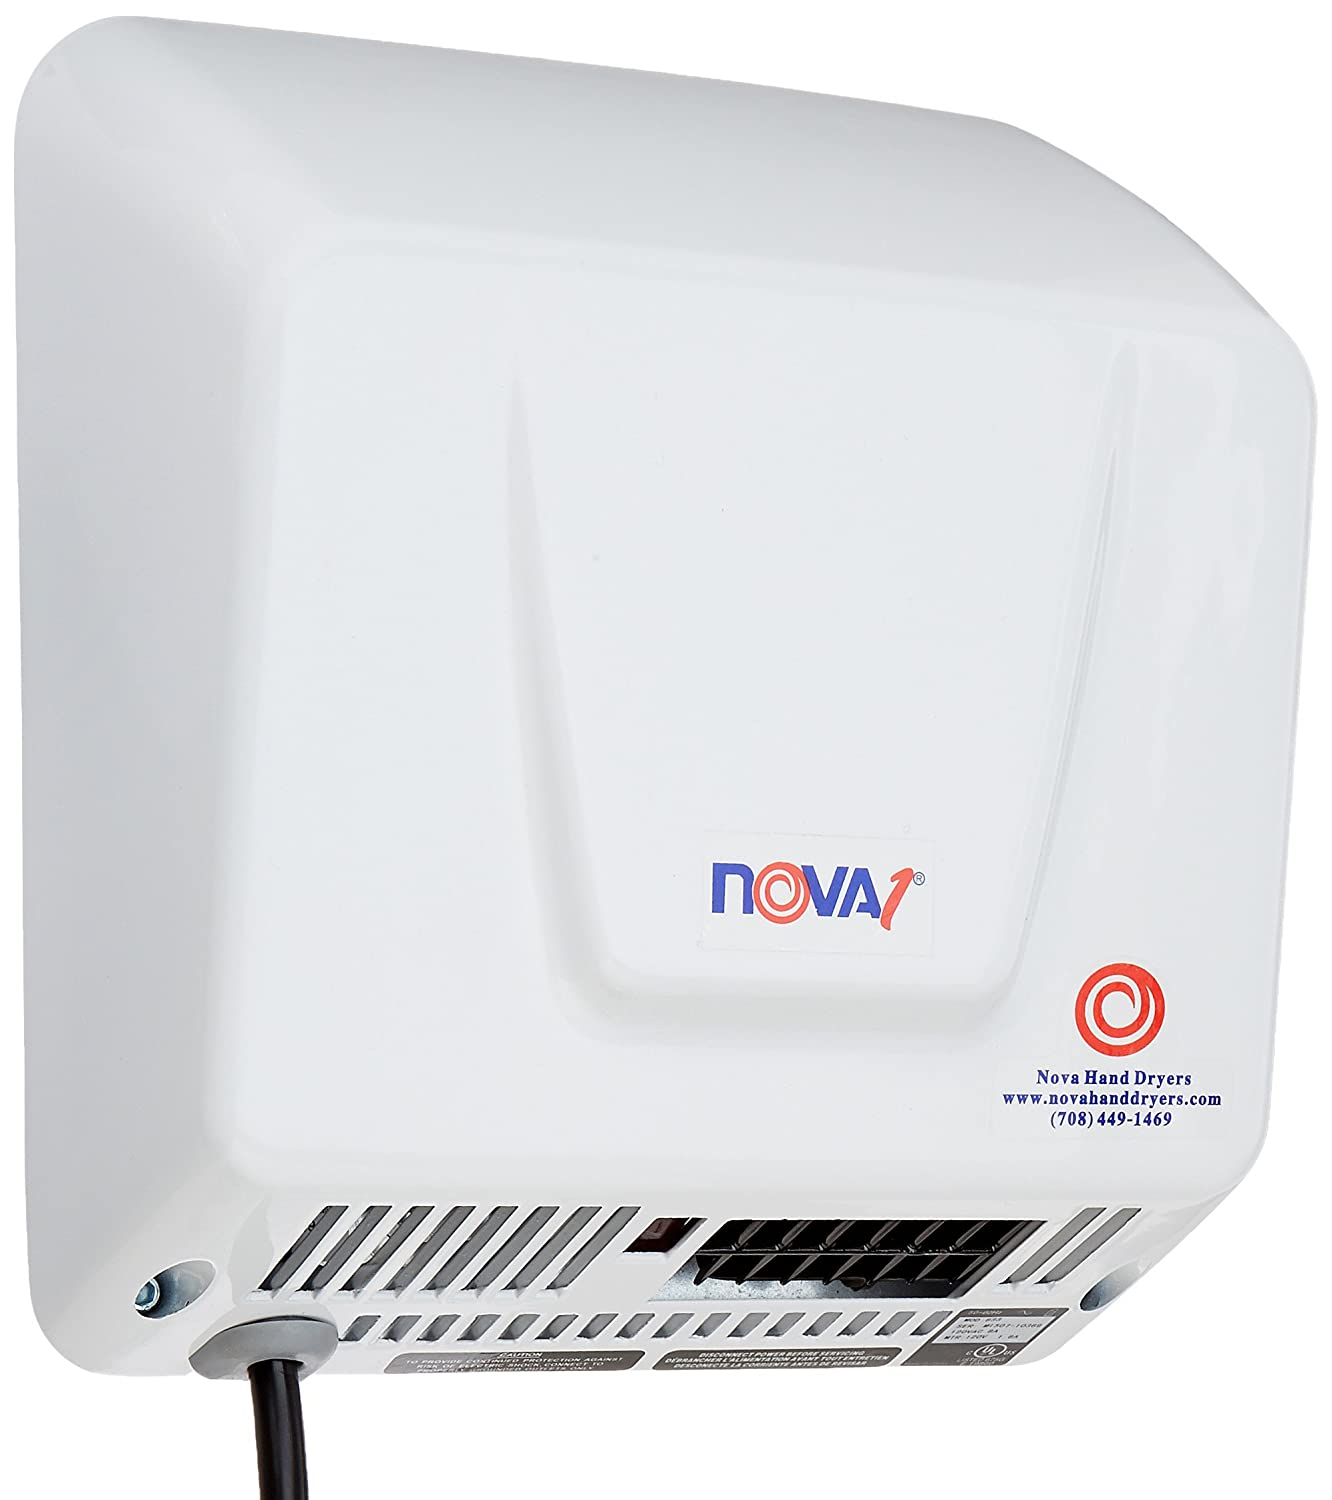 NOVA 0833 Economical Hand Dryers, 1 Plug-in, 110-220V World Dryer 083300000P 113